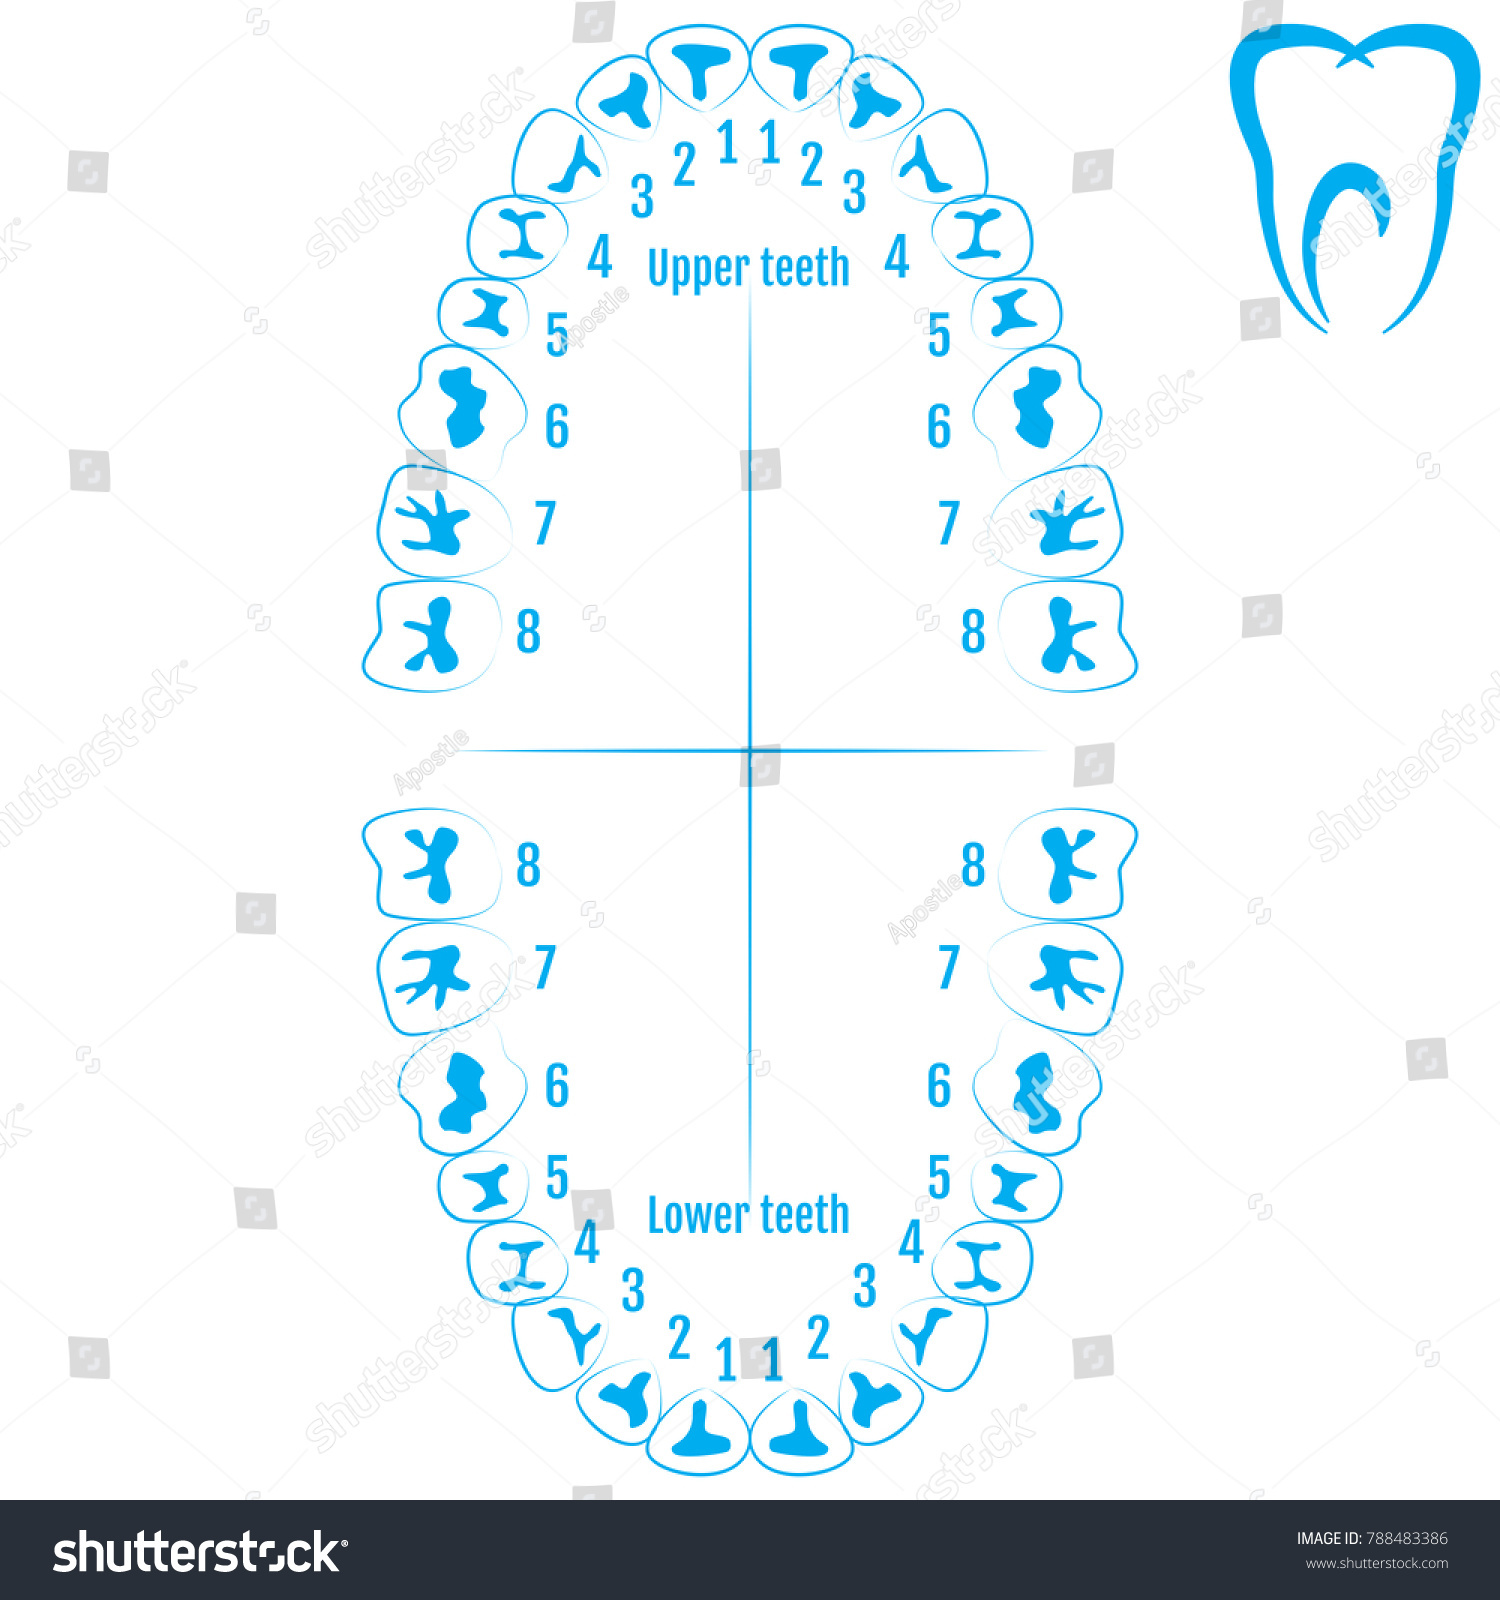 Human Tooth Number Topsimages